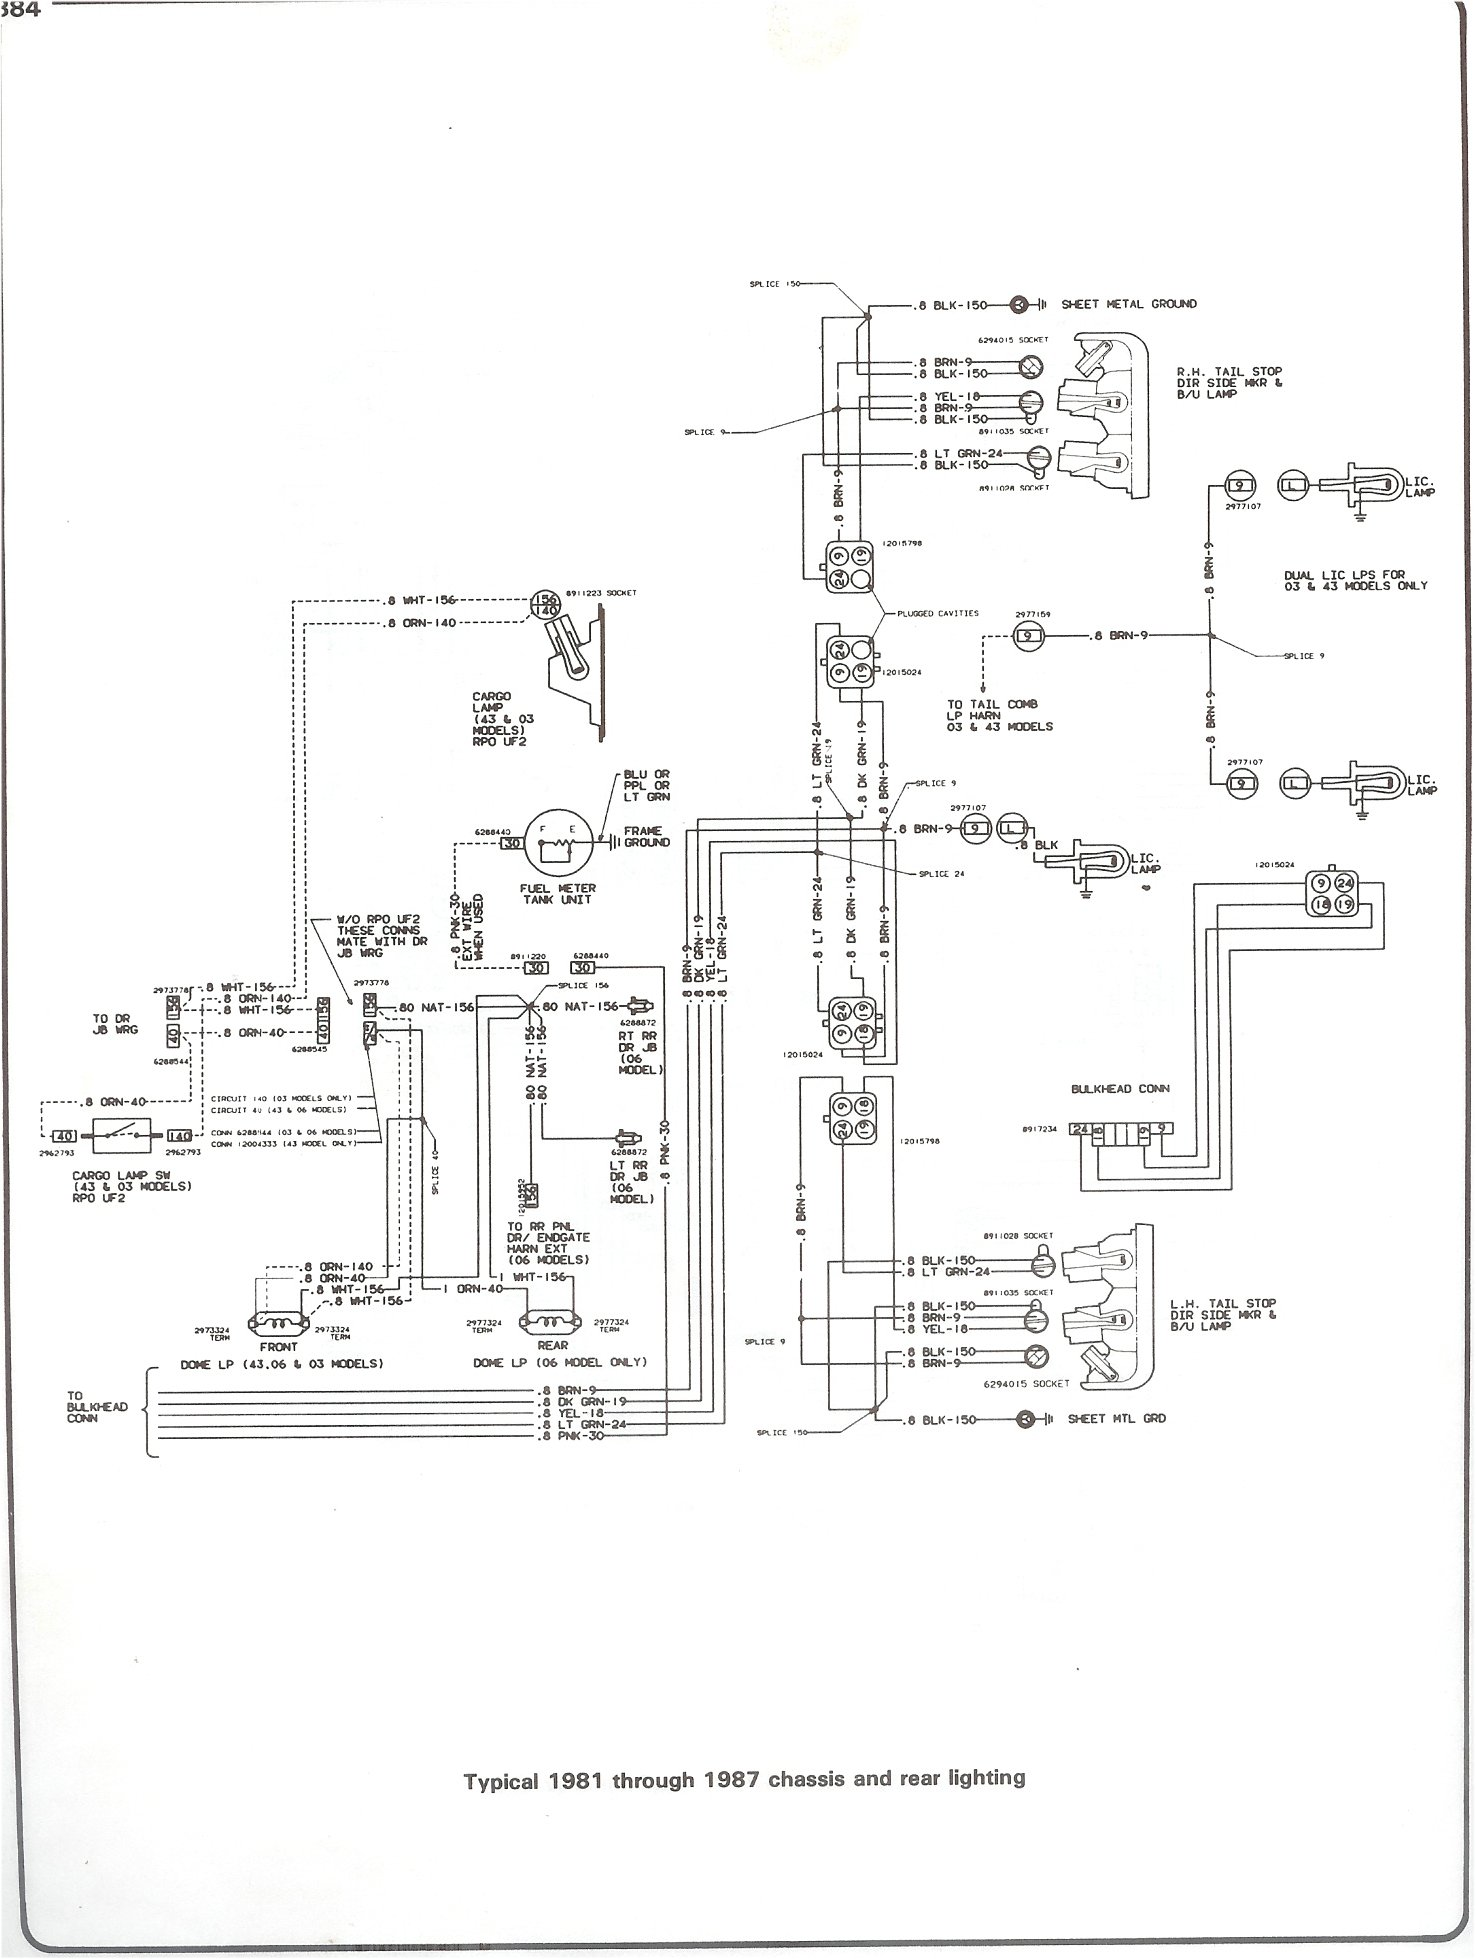 86 Chevy Truck Wiring Diagram : 29 Wiring Diagram Images